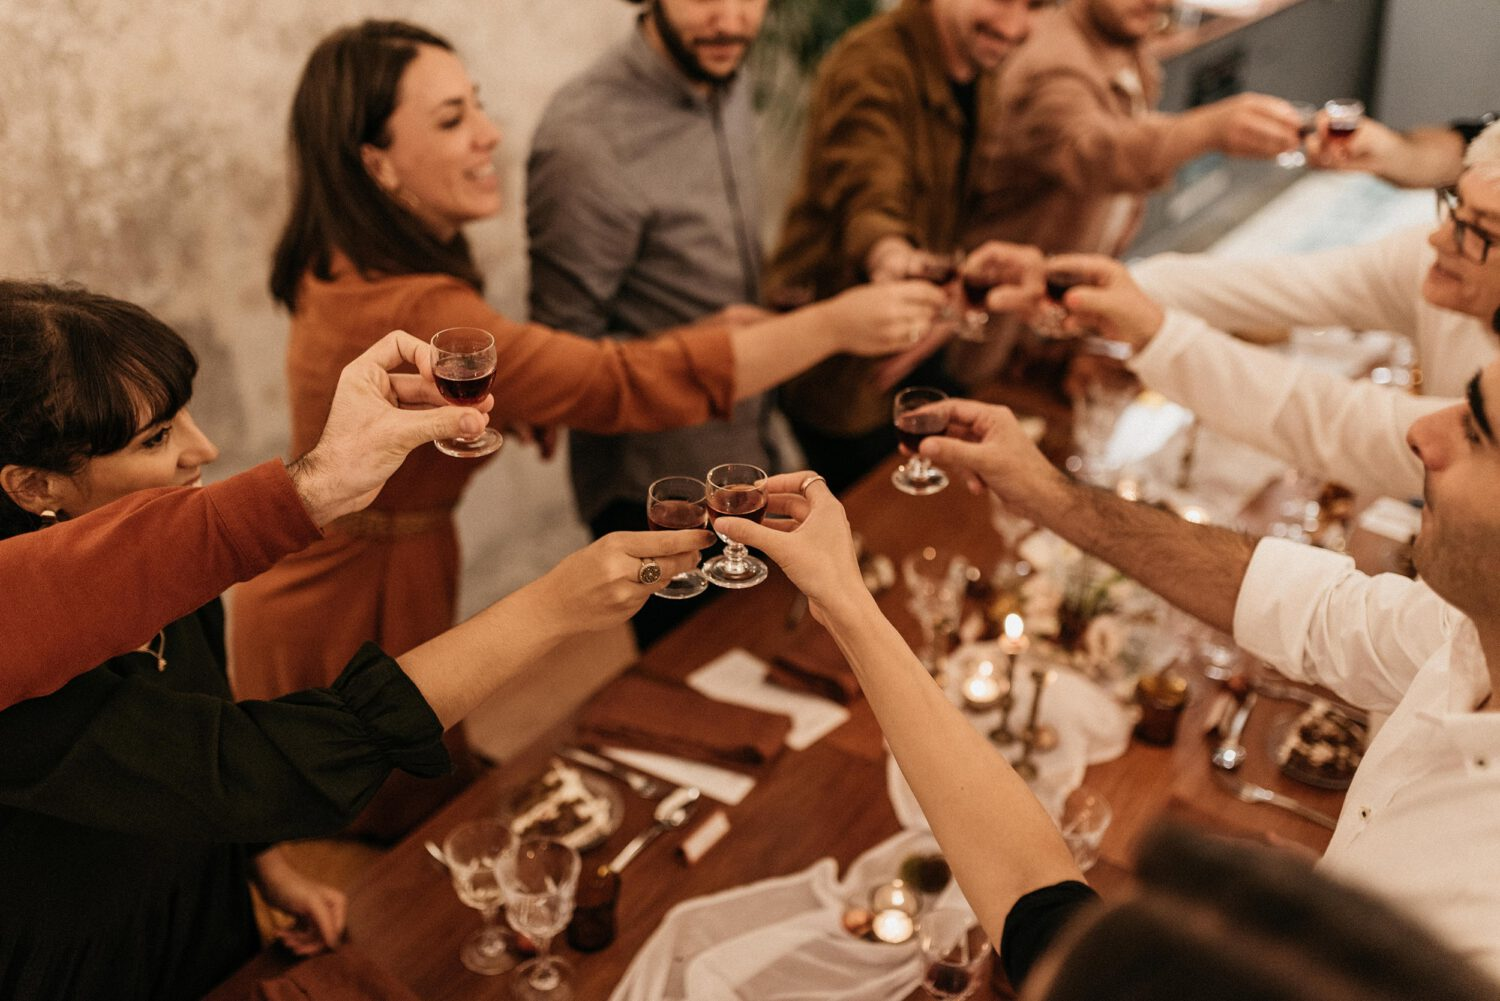 Standing guests toast between smiles around the meal table at the Brava launch event, in a cheerful and cozy atmosphere, like a small and intimate wedding.